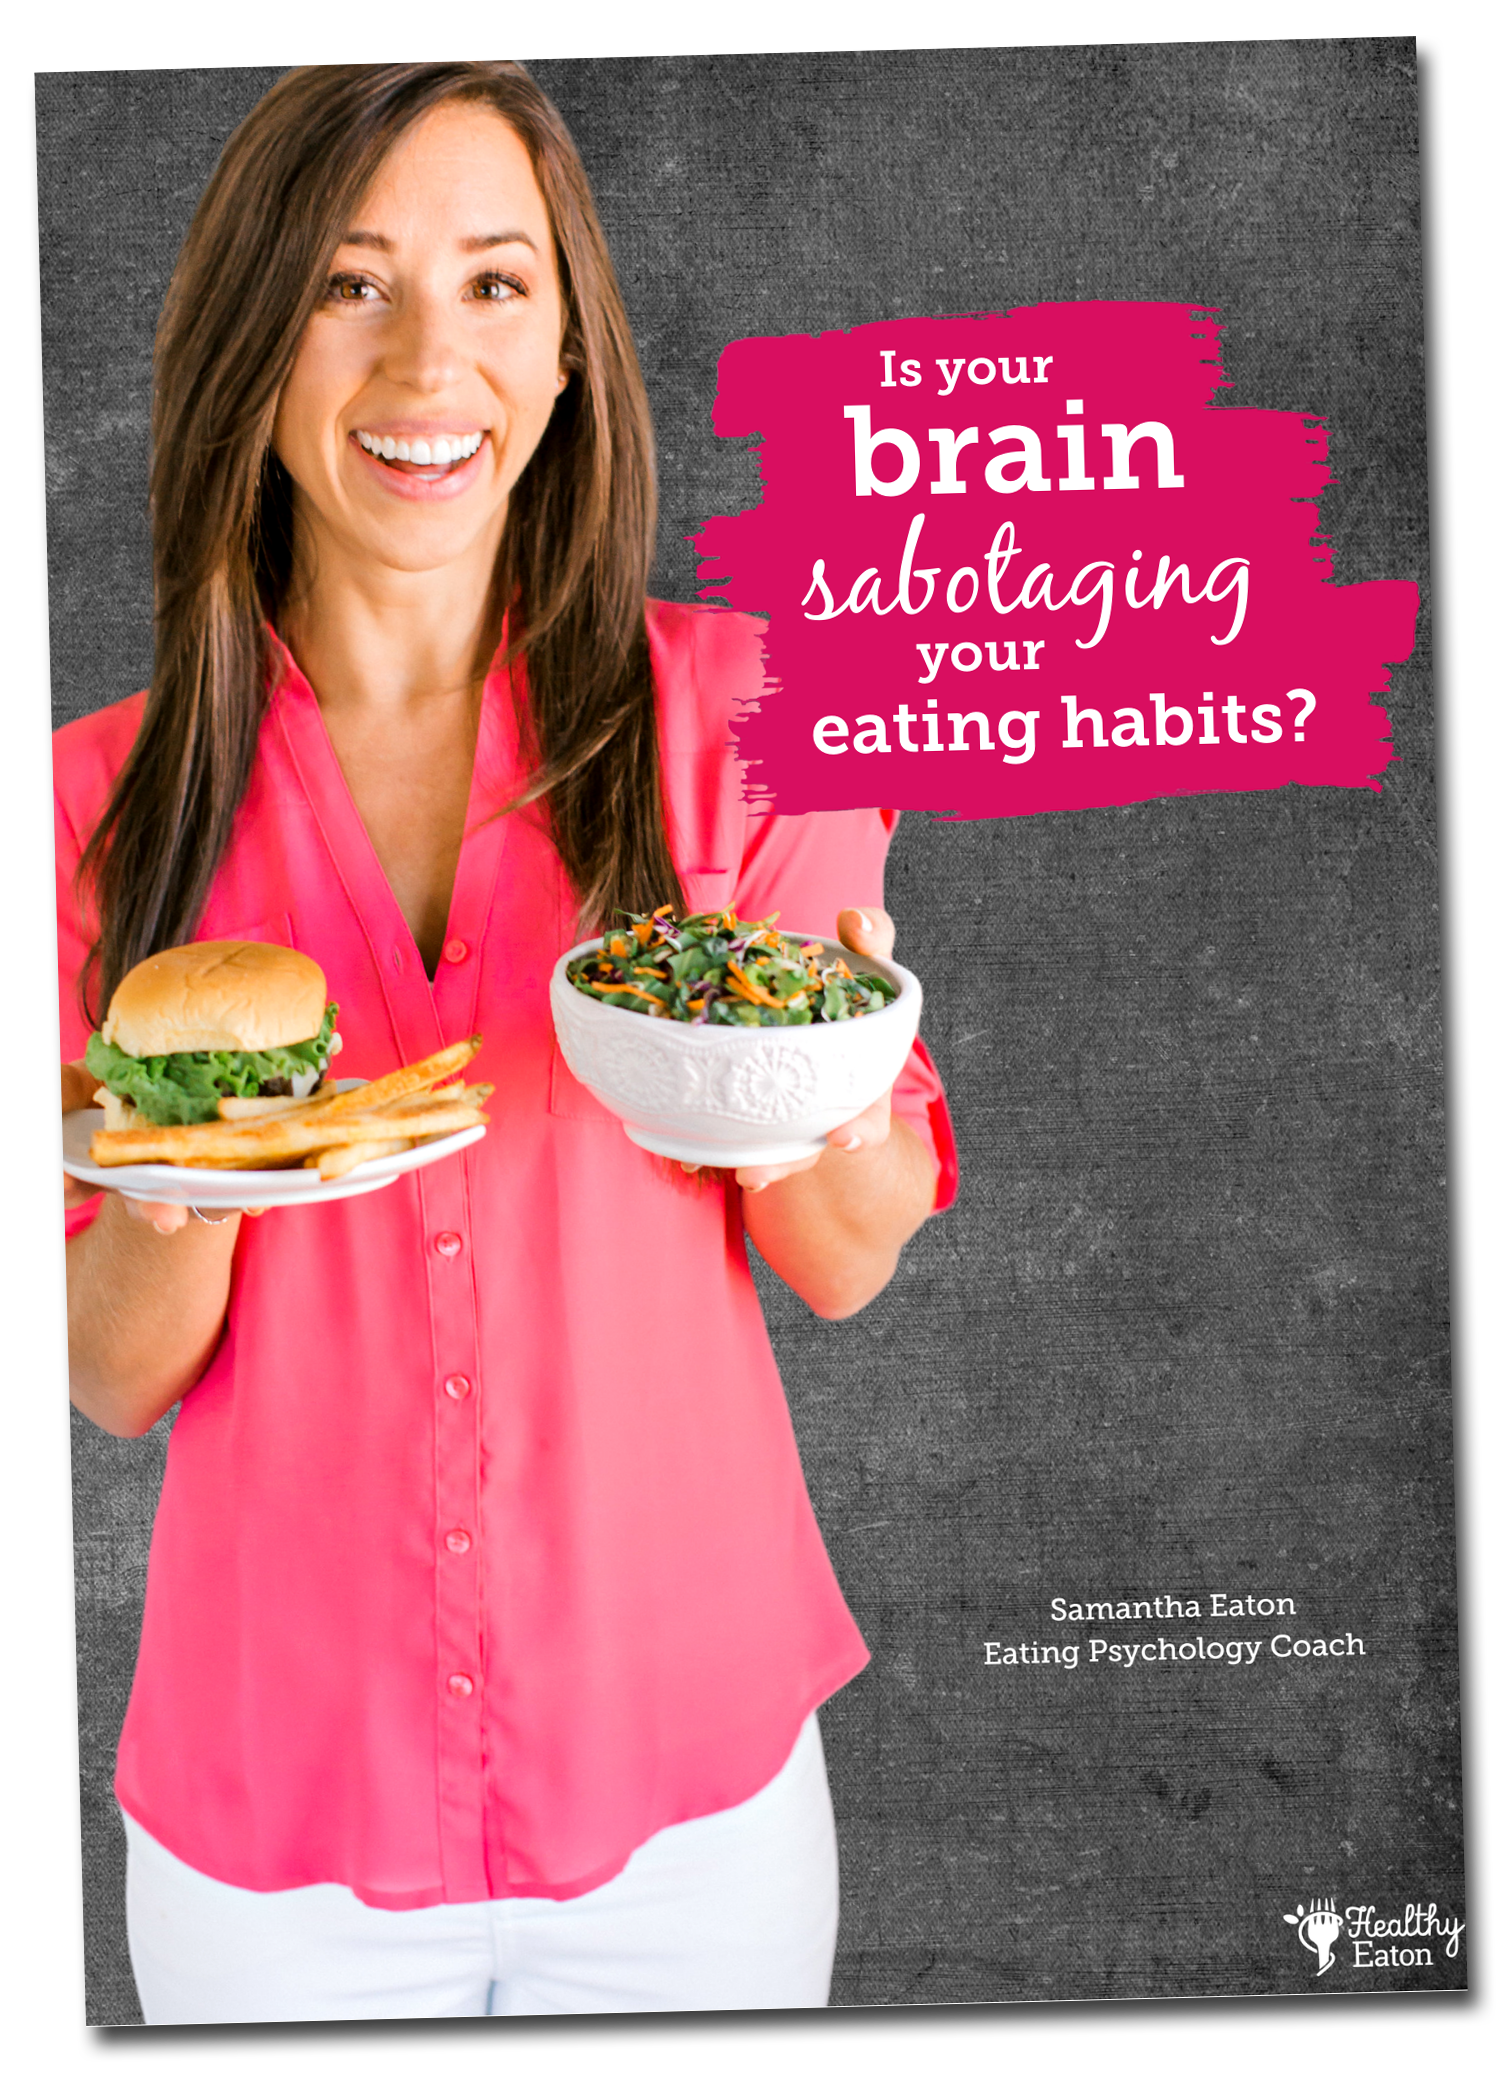 is your brain sabotaging your eating habits